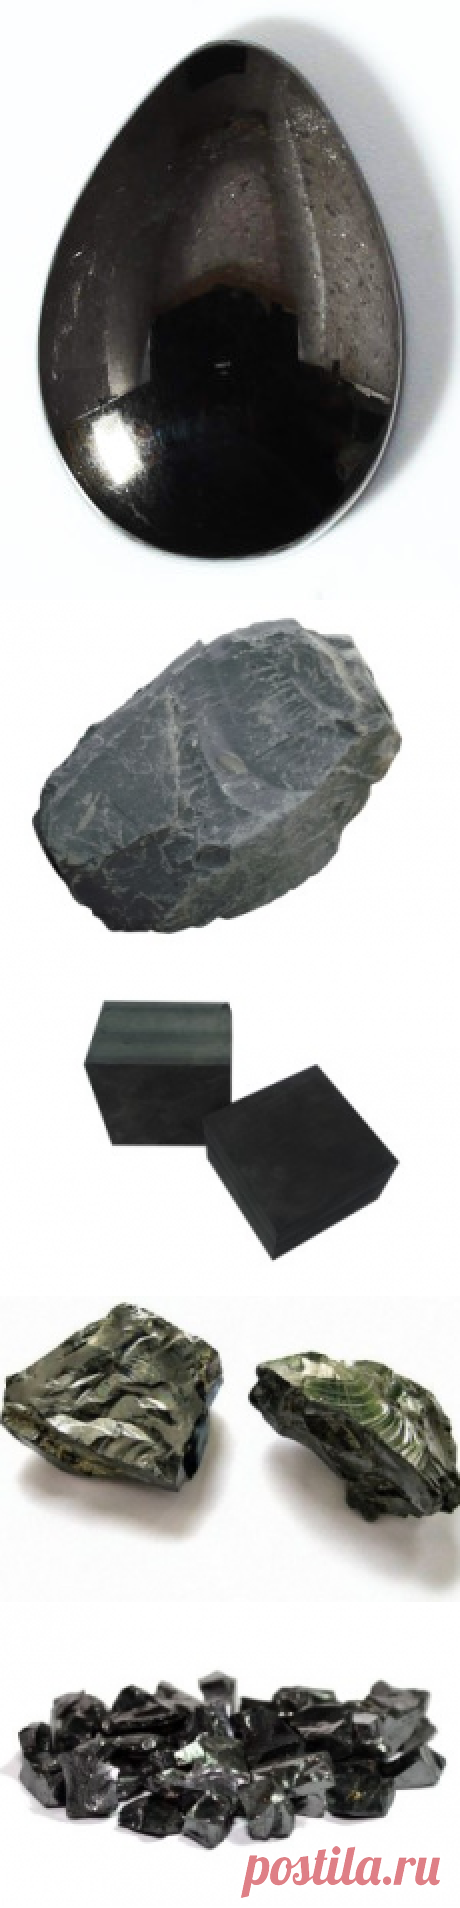 Stone of Shungit: Medicinal properties and its application (Photo)